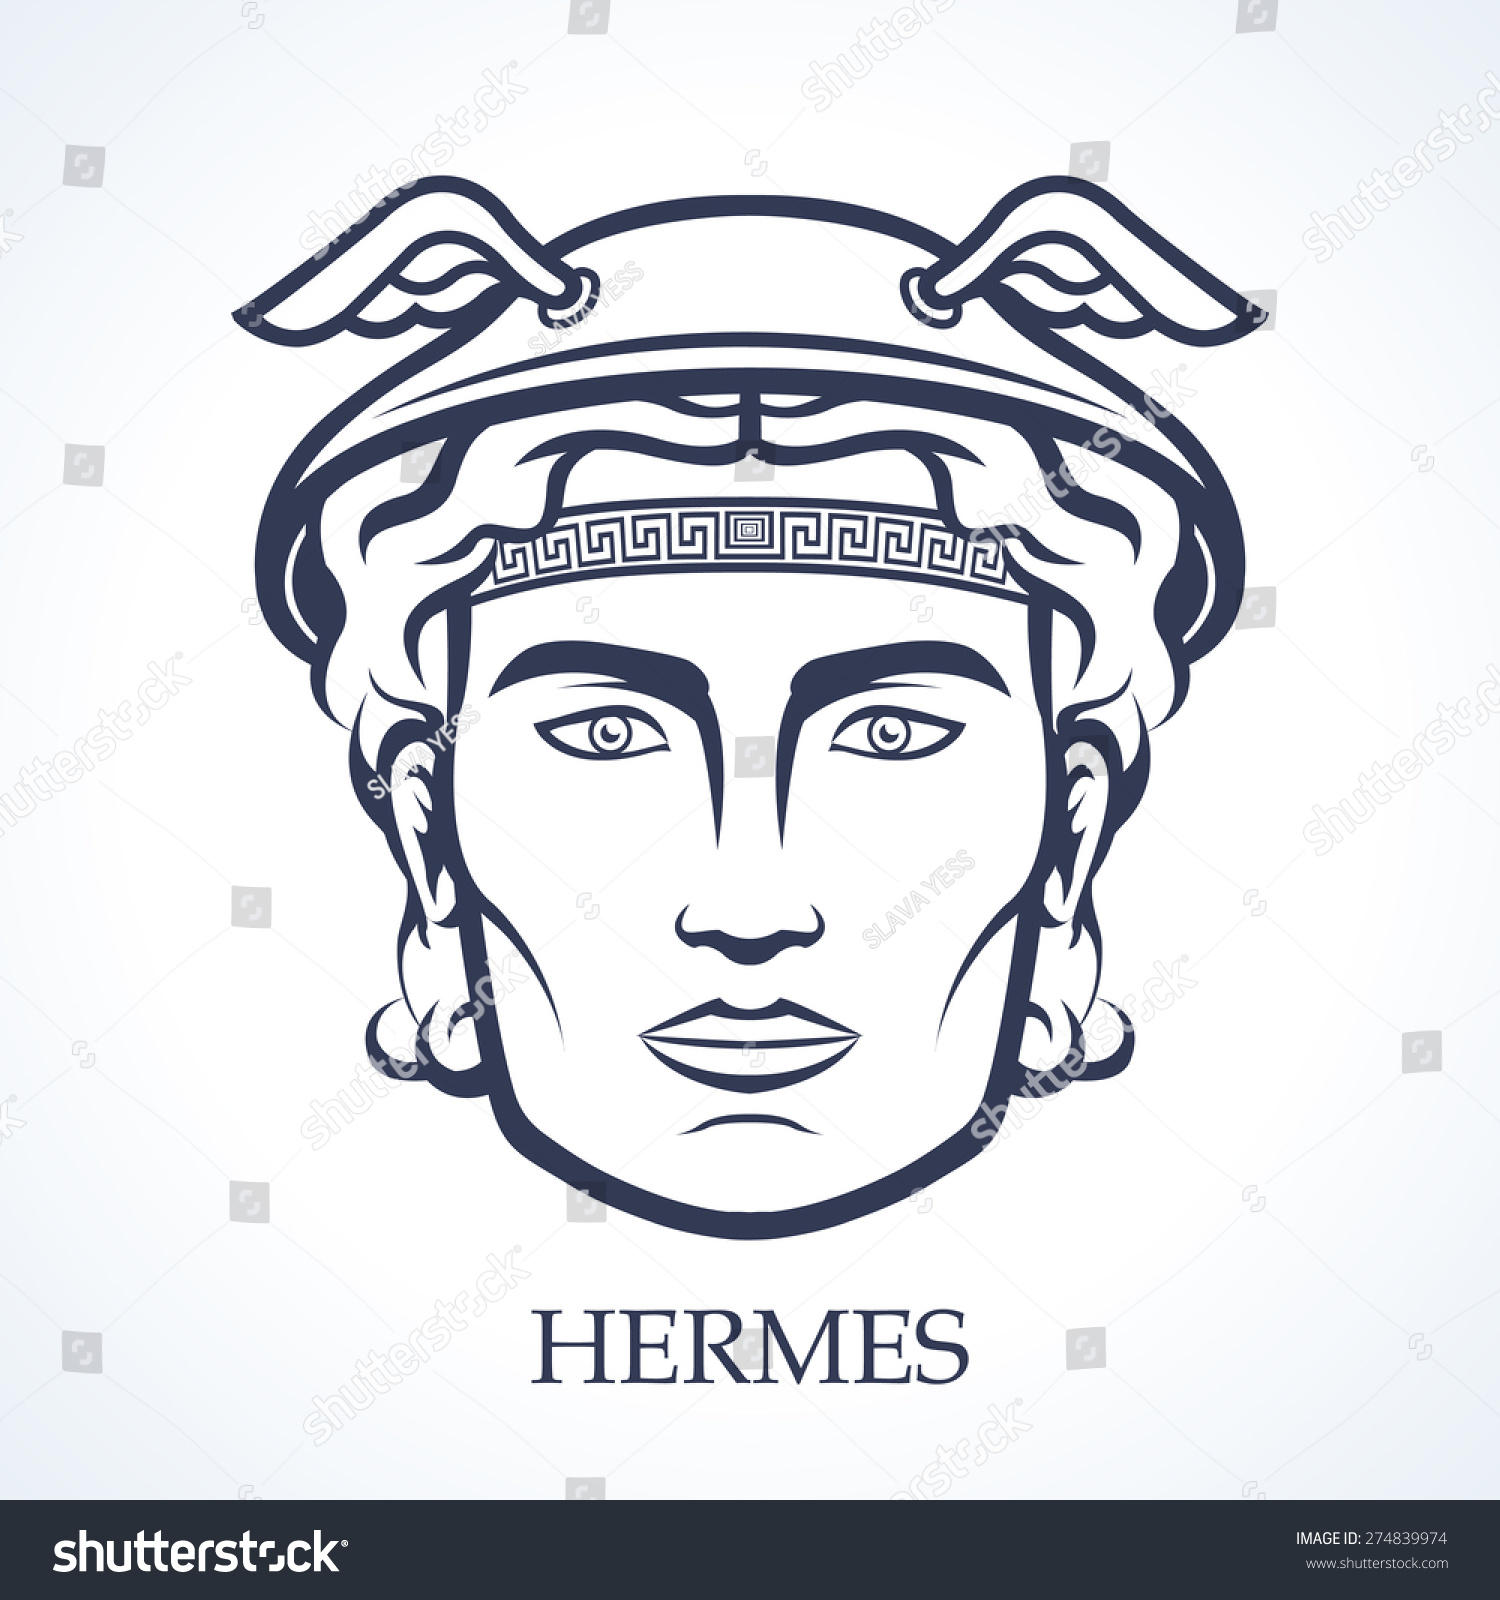 graphic download Greek god at getdrawings. Hermes drawing face